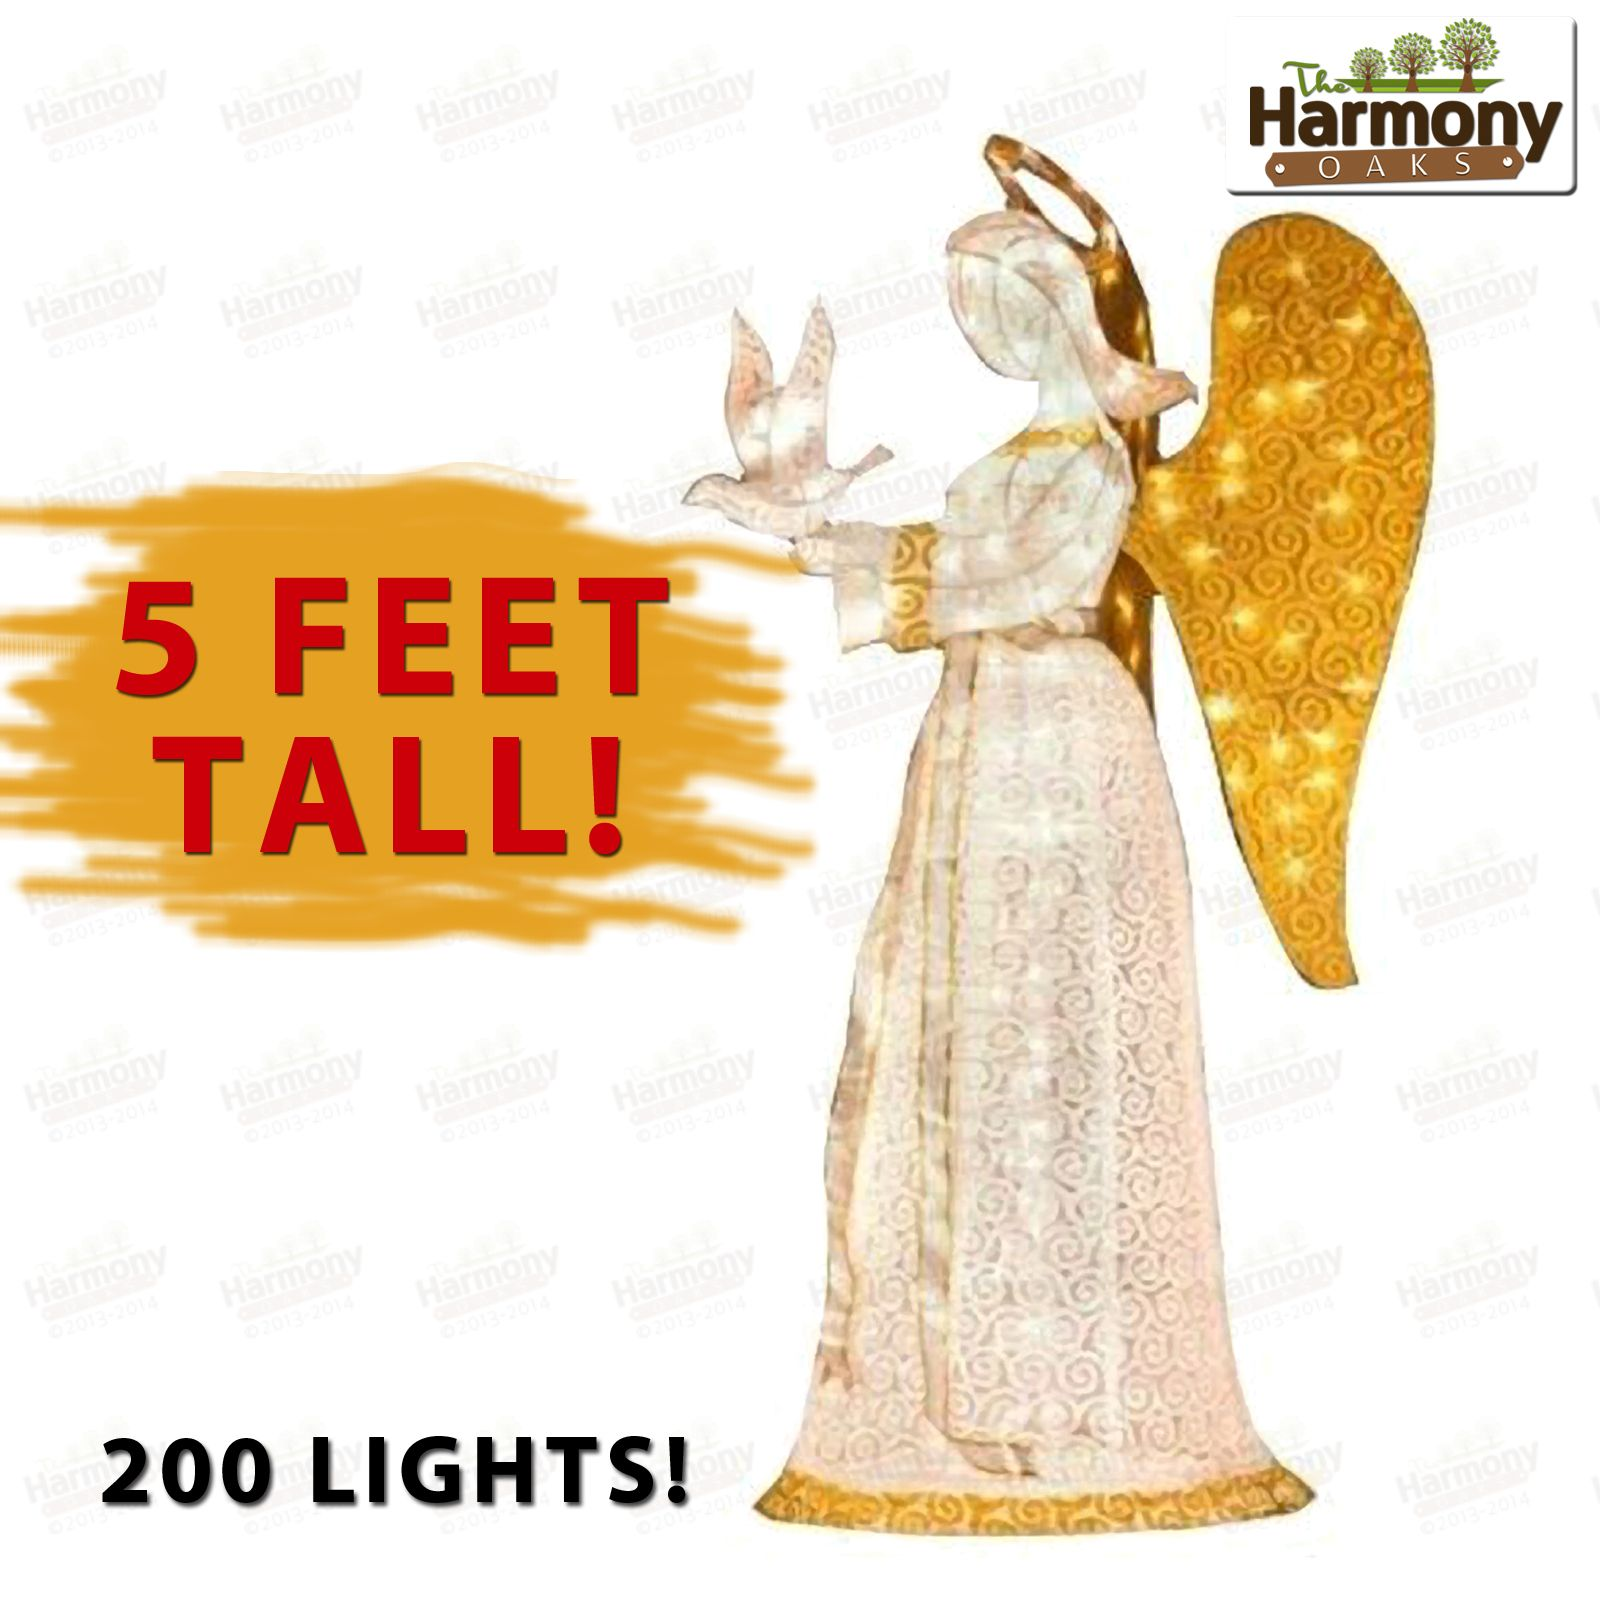 Yard christmas angel lighted decoration outdoor decor vintage dove 60 christmas angel with dove christmas angel lighted decoration outdoor decor vintage dove horn 60 aloadofball Image collections